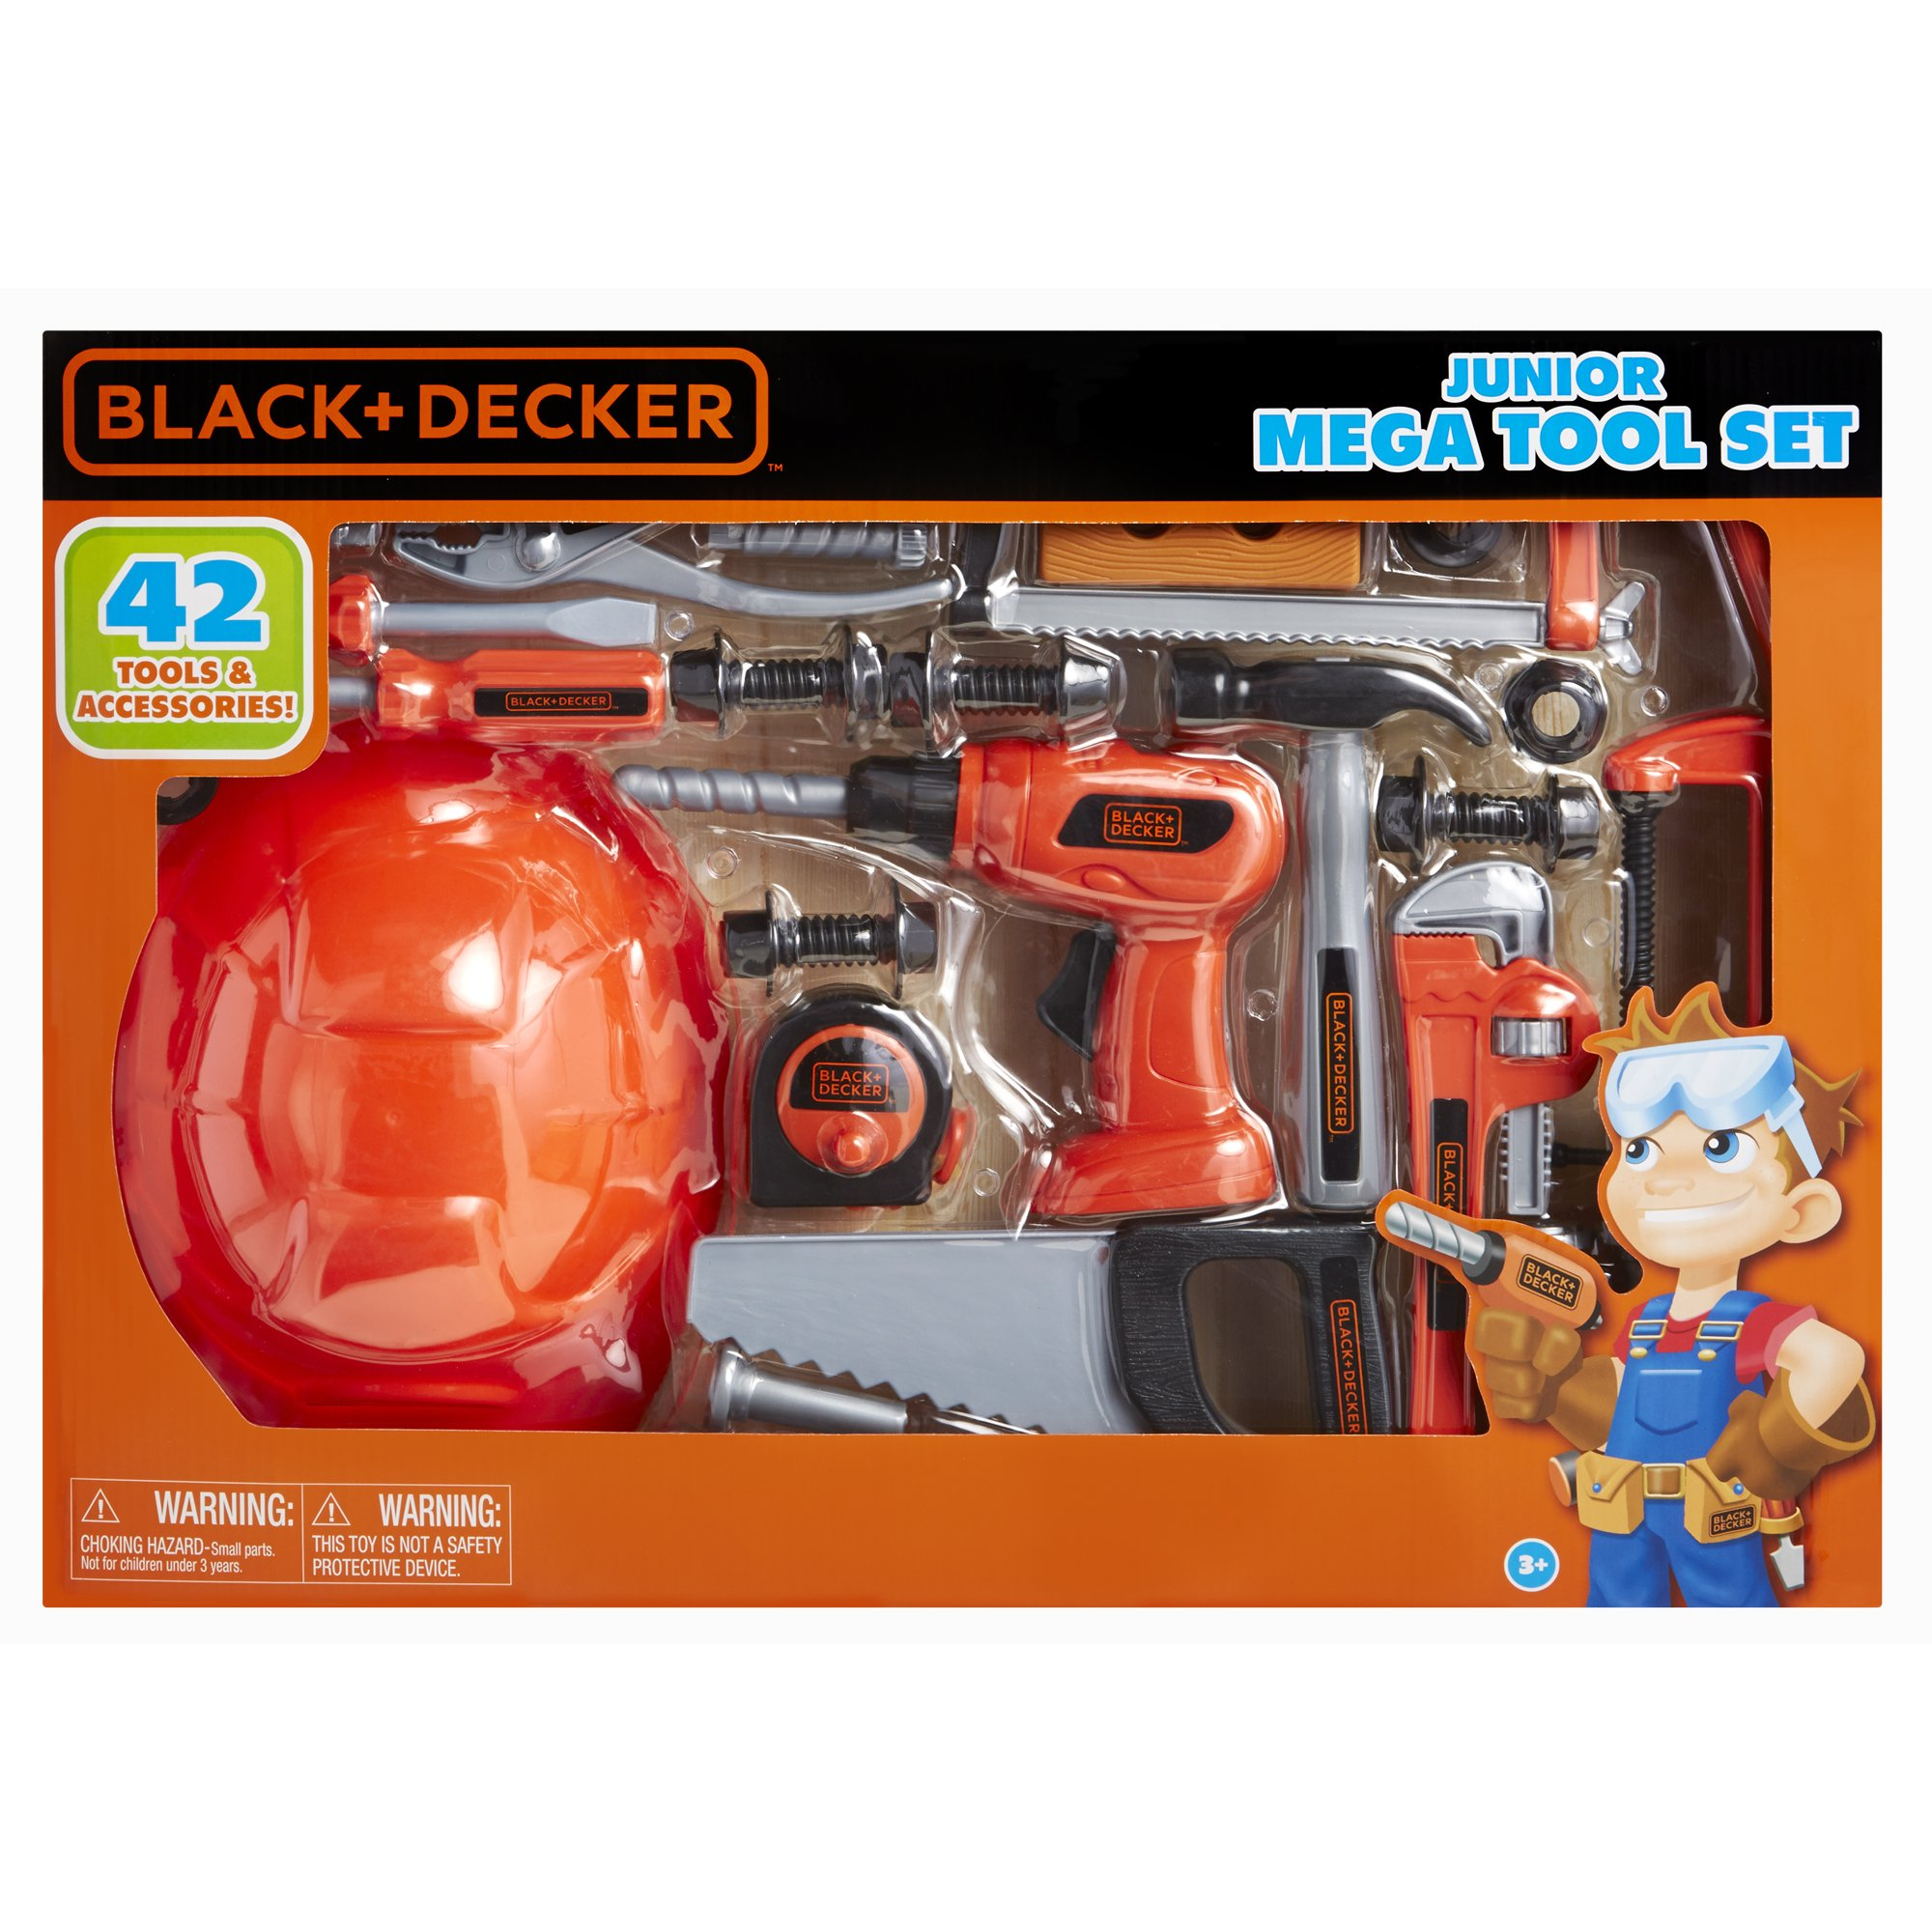 BLACK+DECKER Junior Kids Tool Set - Mega Tool Set with 42 Tools & Accessories! Role Play Tools for Toddlers Boys & Girls Ages 3 Years Old and Above, Includes Helmet! by BLACK+DECKER